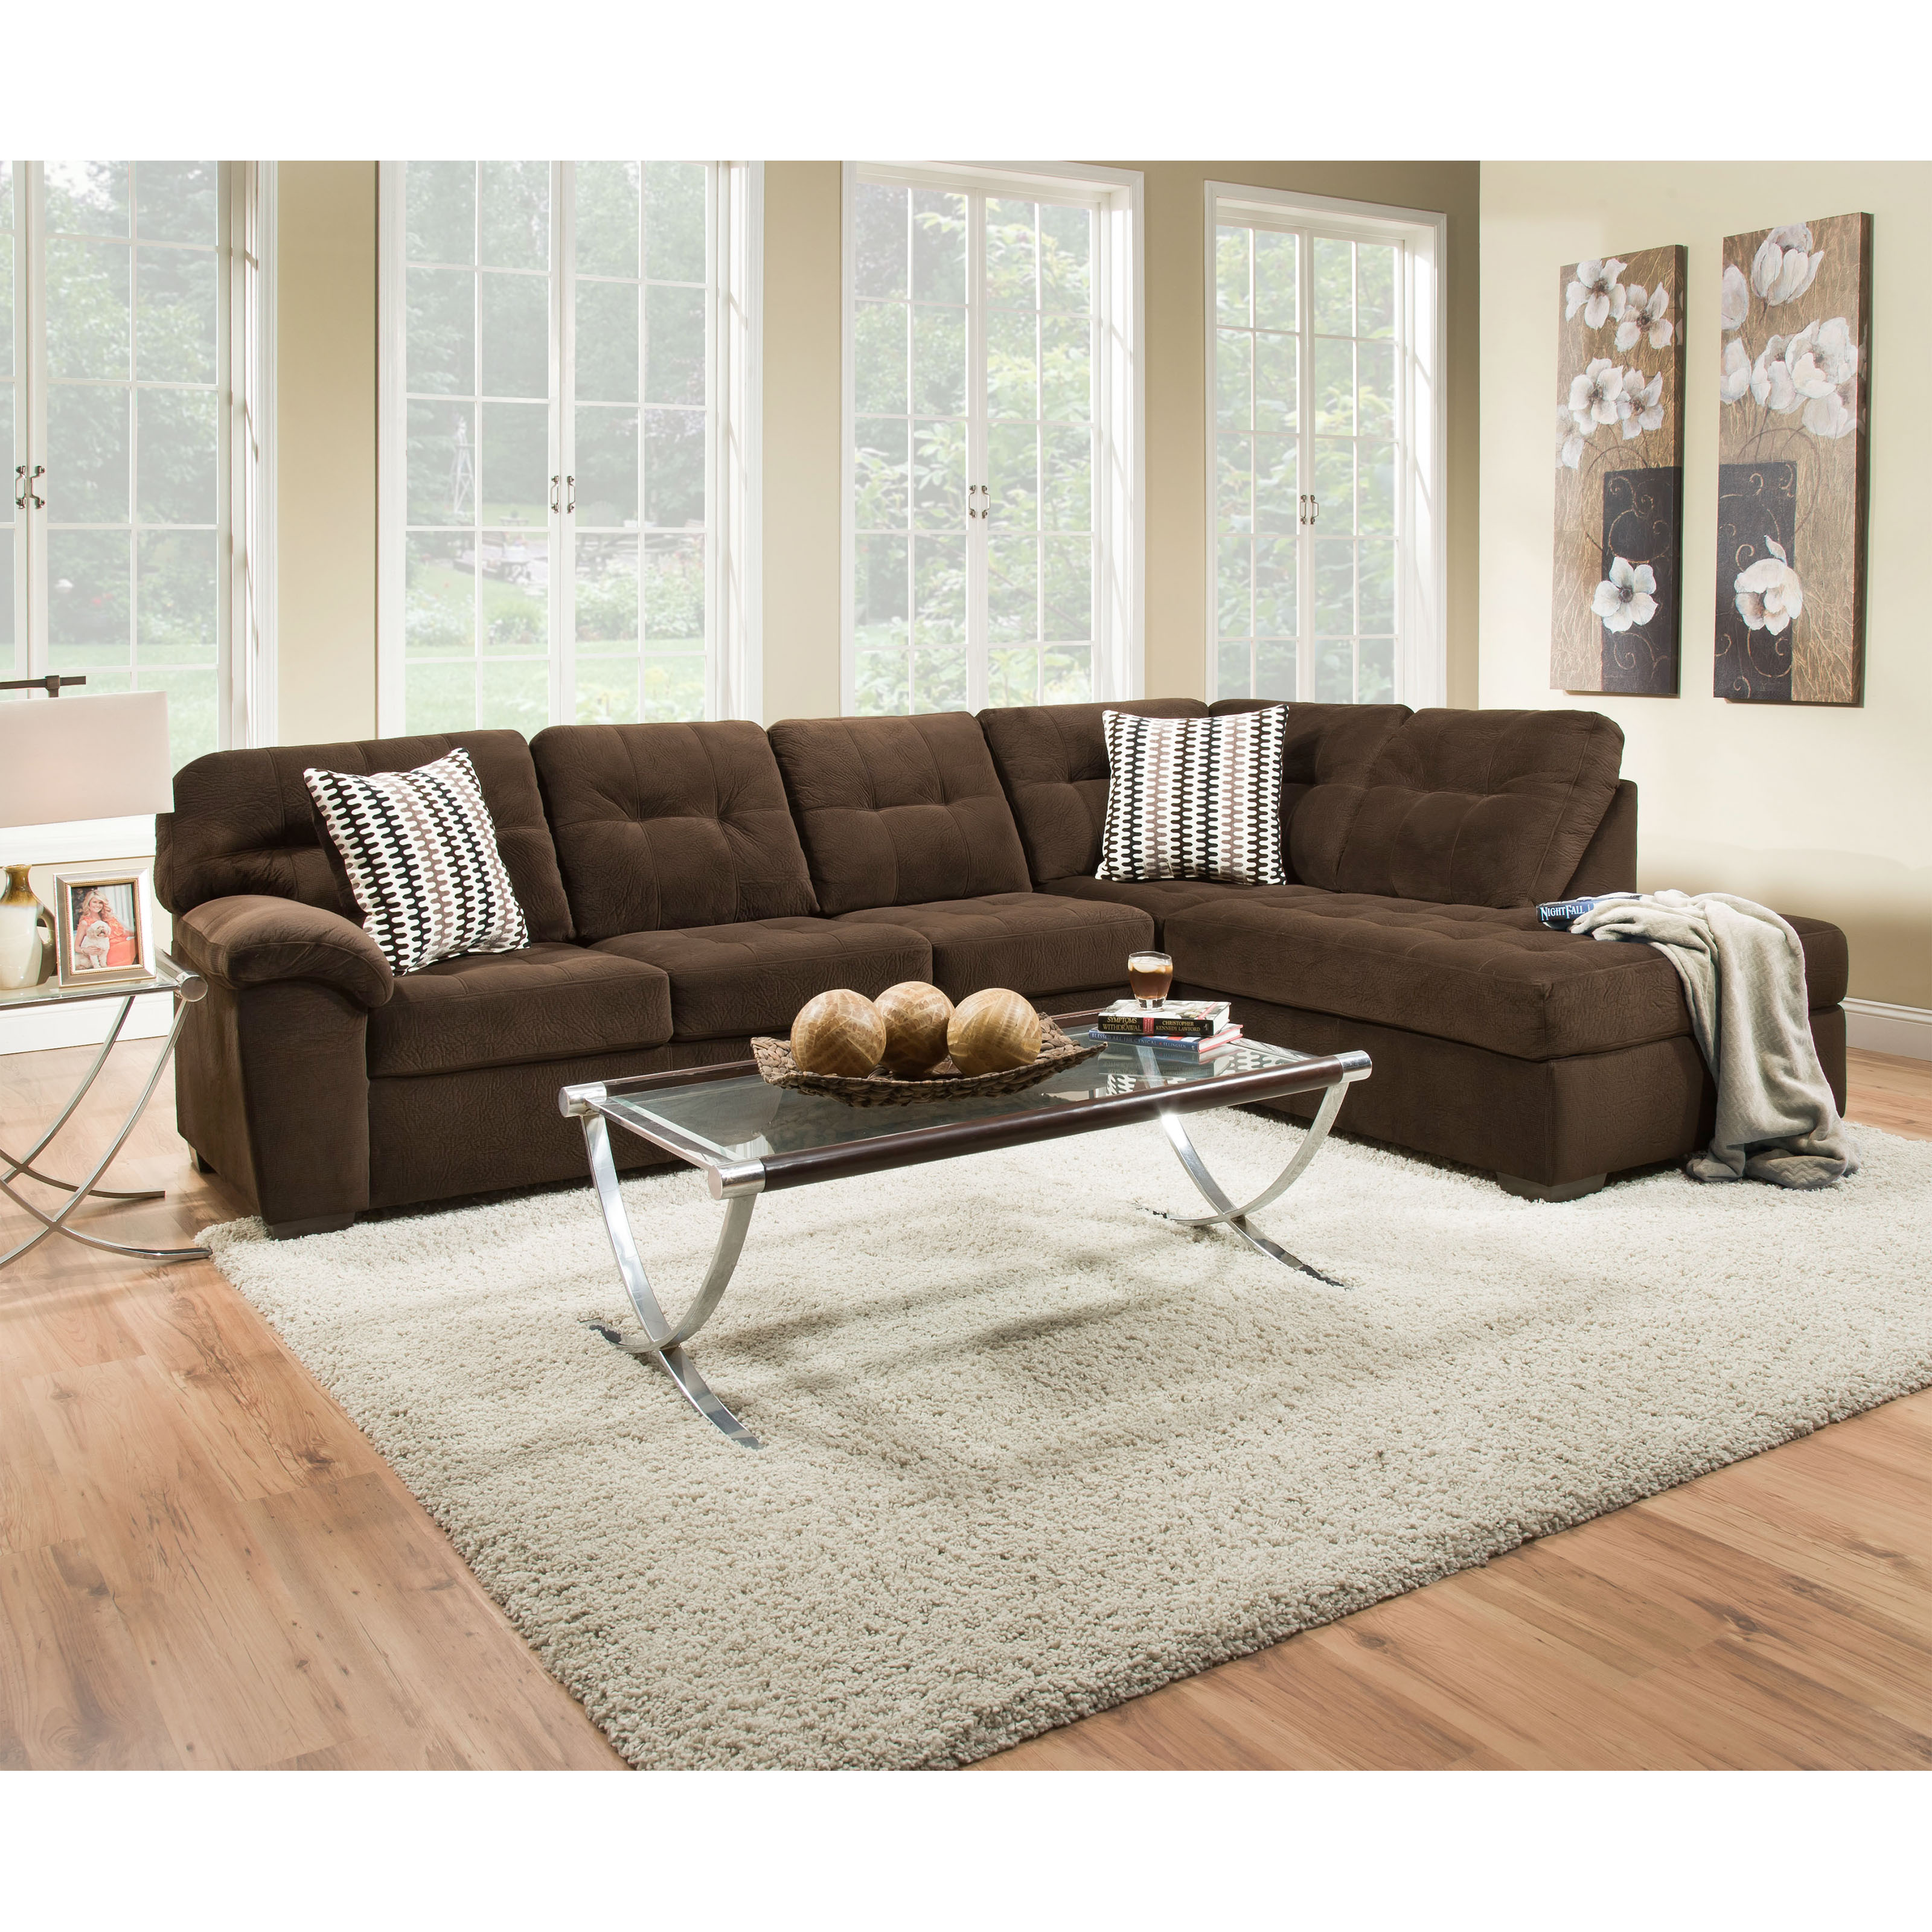 Simmons bernie godiva sofa sectional with chaise for Simmons sectional sofa with chaise